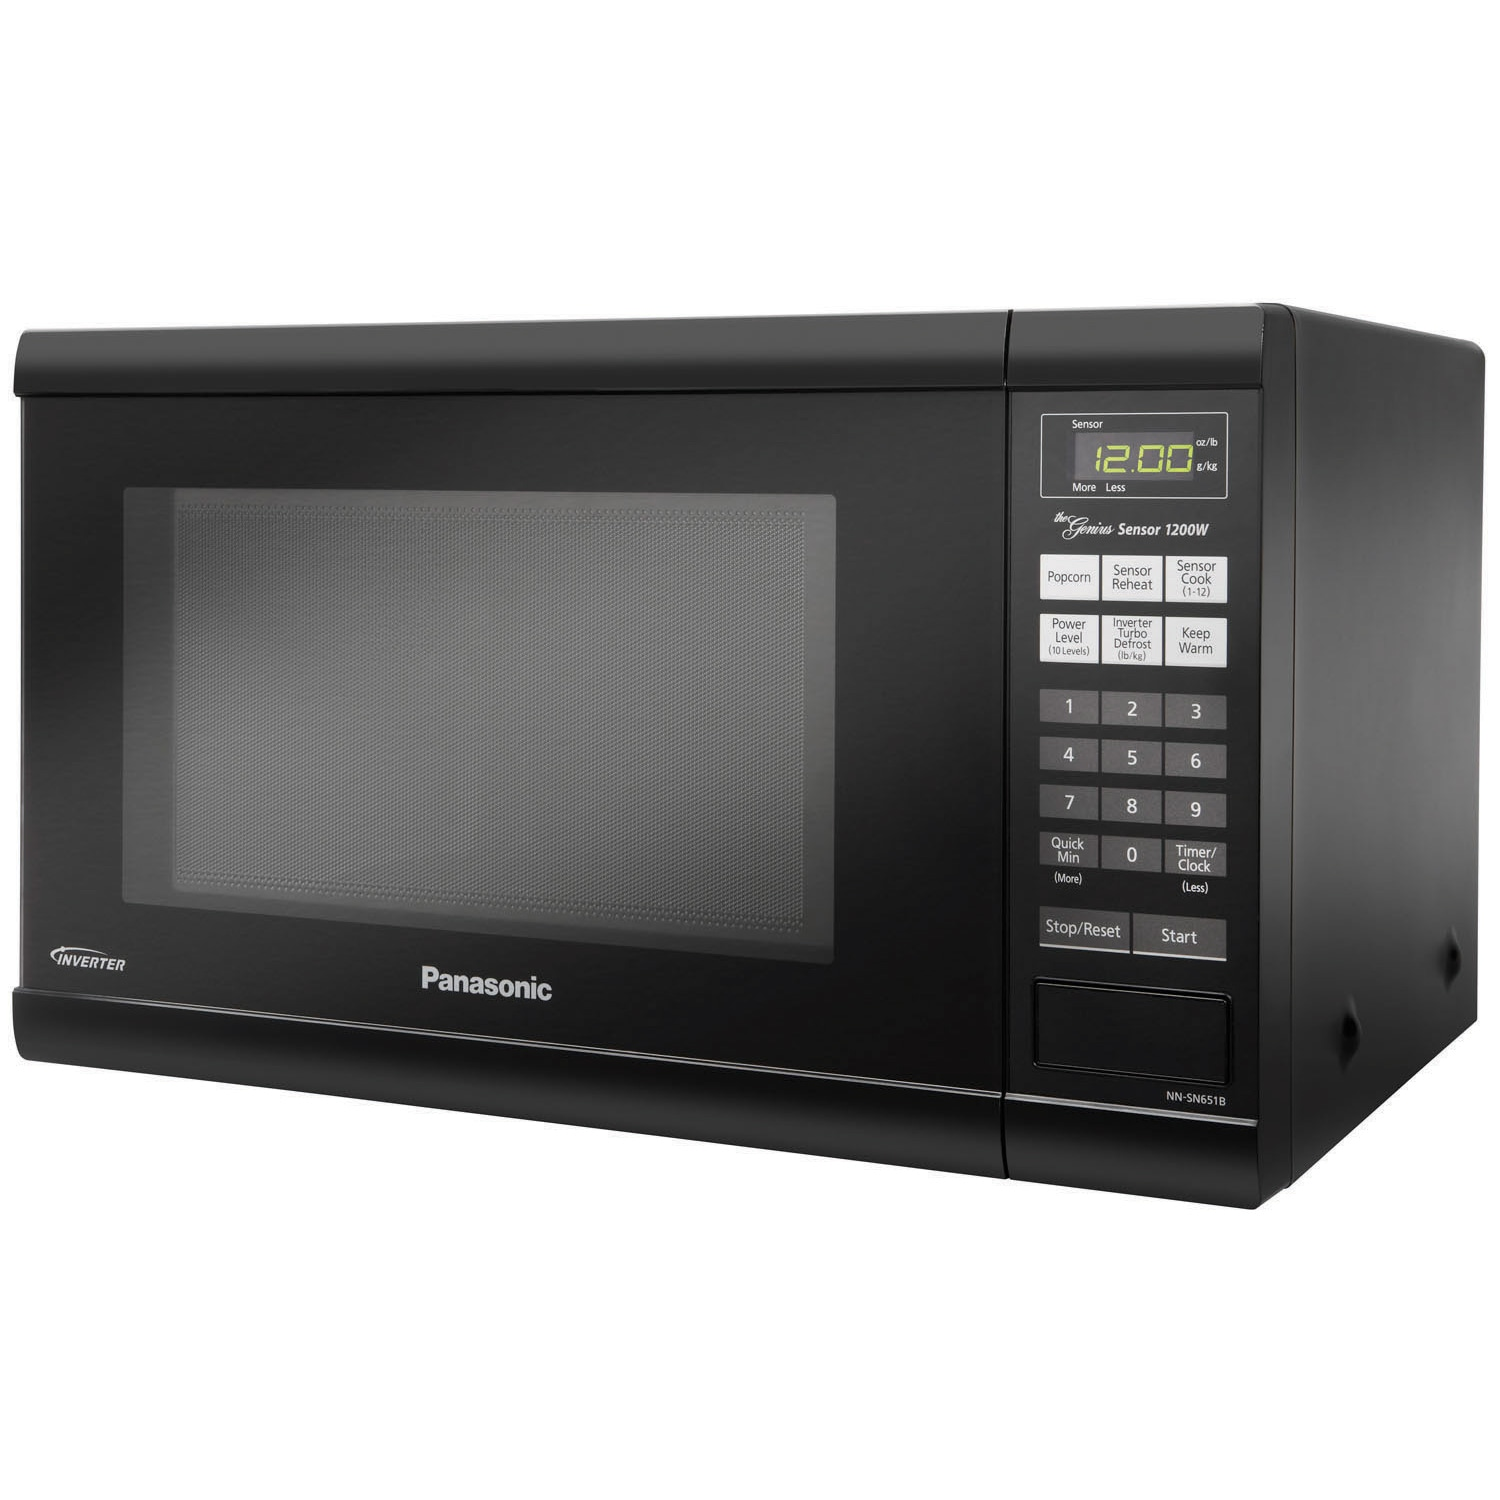 Panasonic NN-SN651B Countertop Microwave Oven with Inverter Technology (Black)